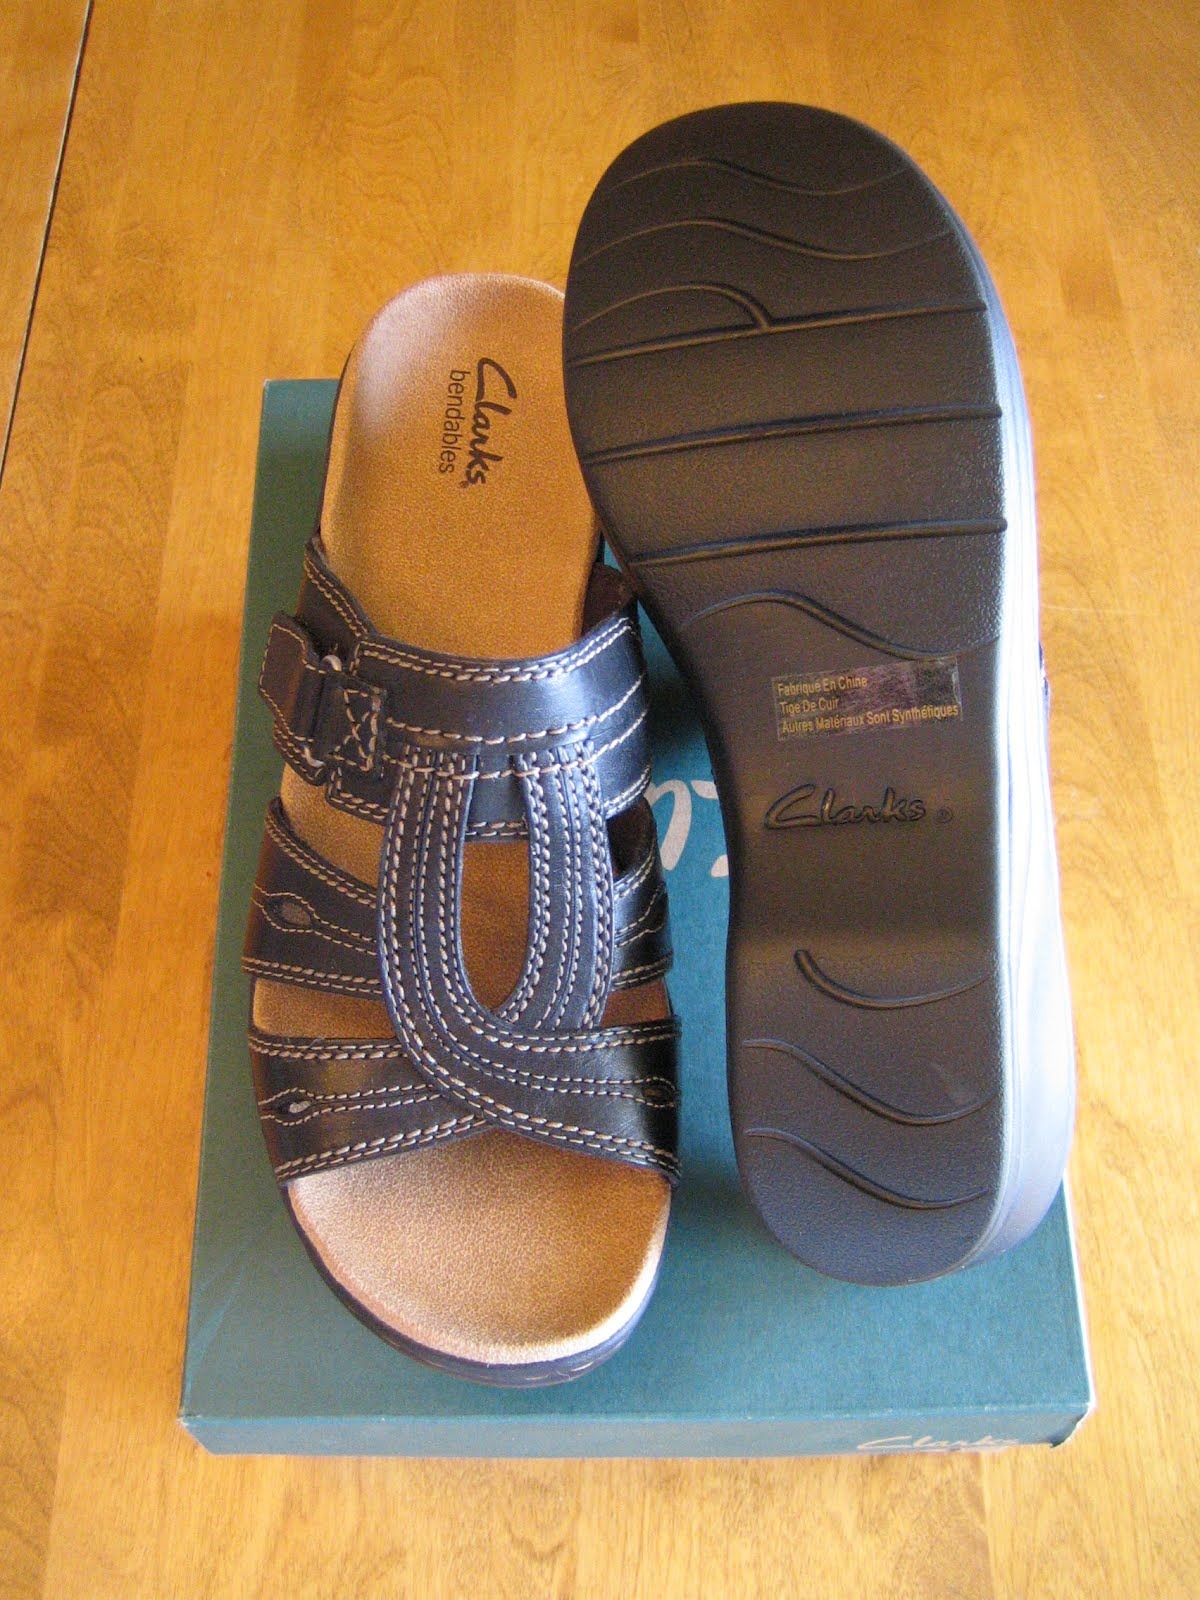 5dd37fba11f Hyrule Trading Company  Clarks bendables - Women s Sandals - NEW